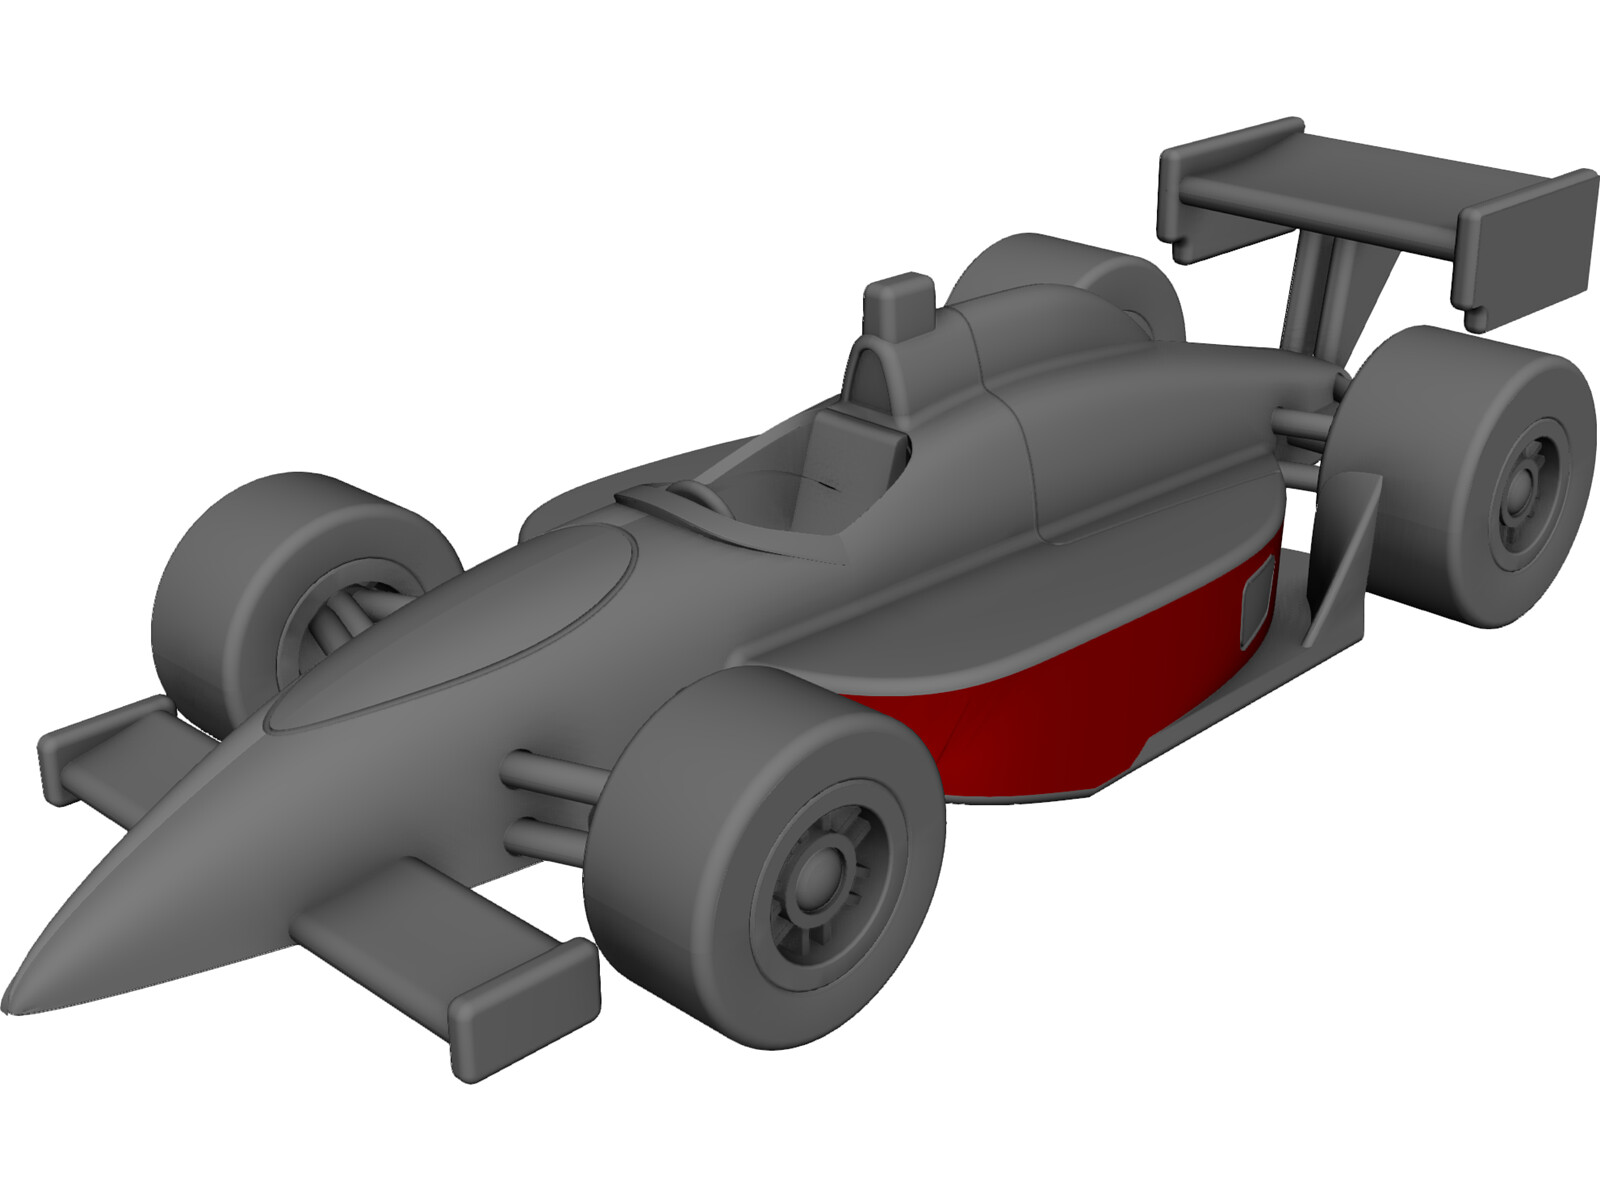 Indy Race Car 3d Cad Model Download 3d Cad Browser